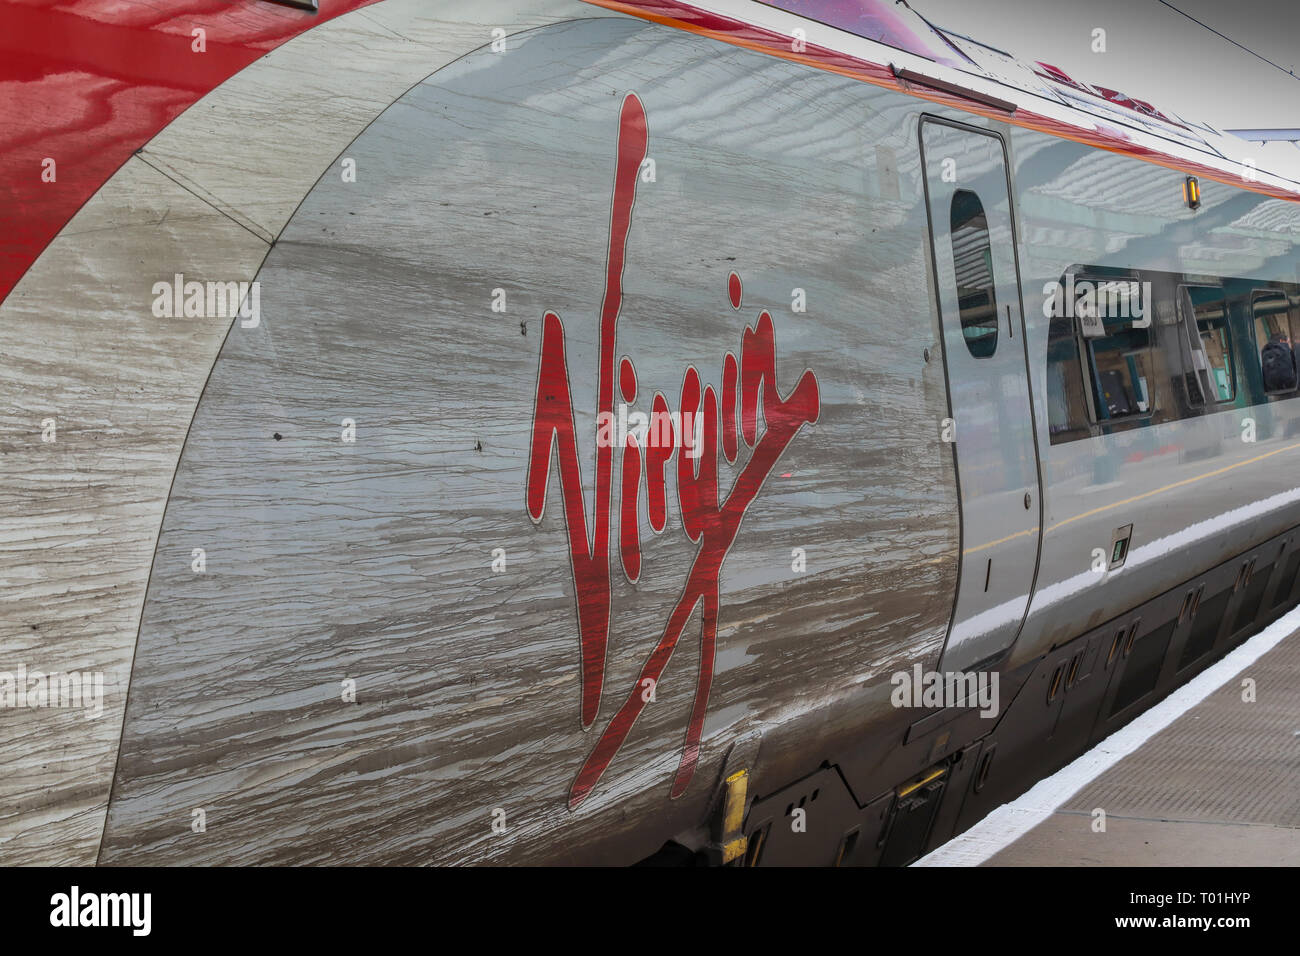 A dirty Class 390 Virgin Pendolino train at Platform 1 of Glasgow Central Station - Stock Image